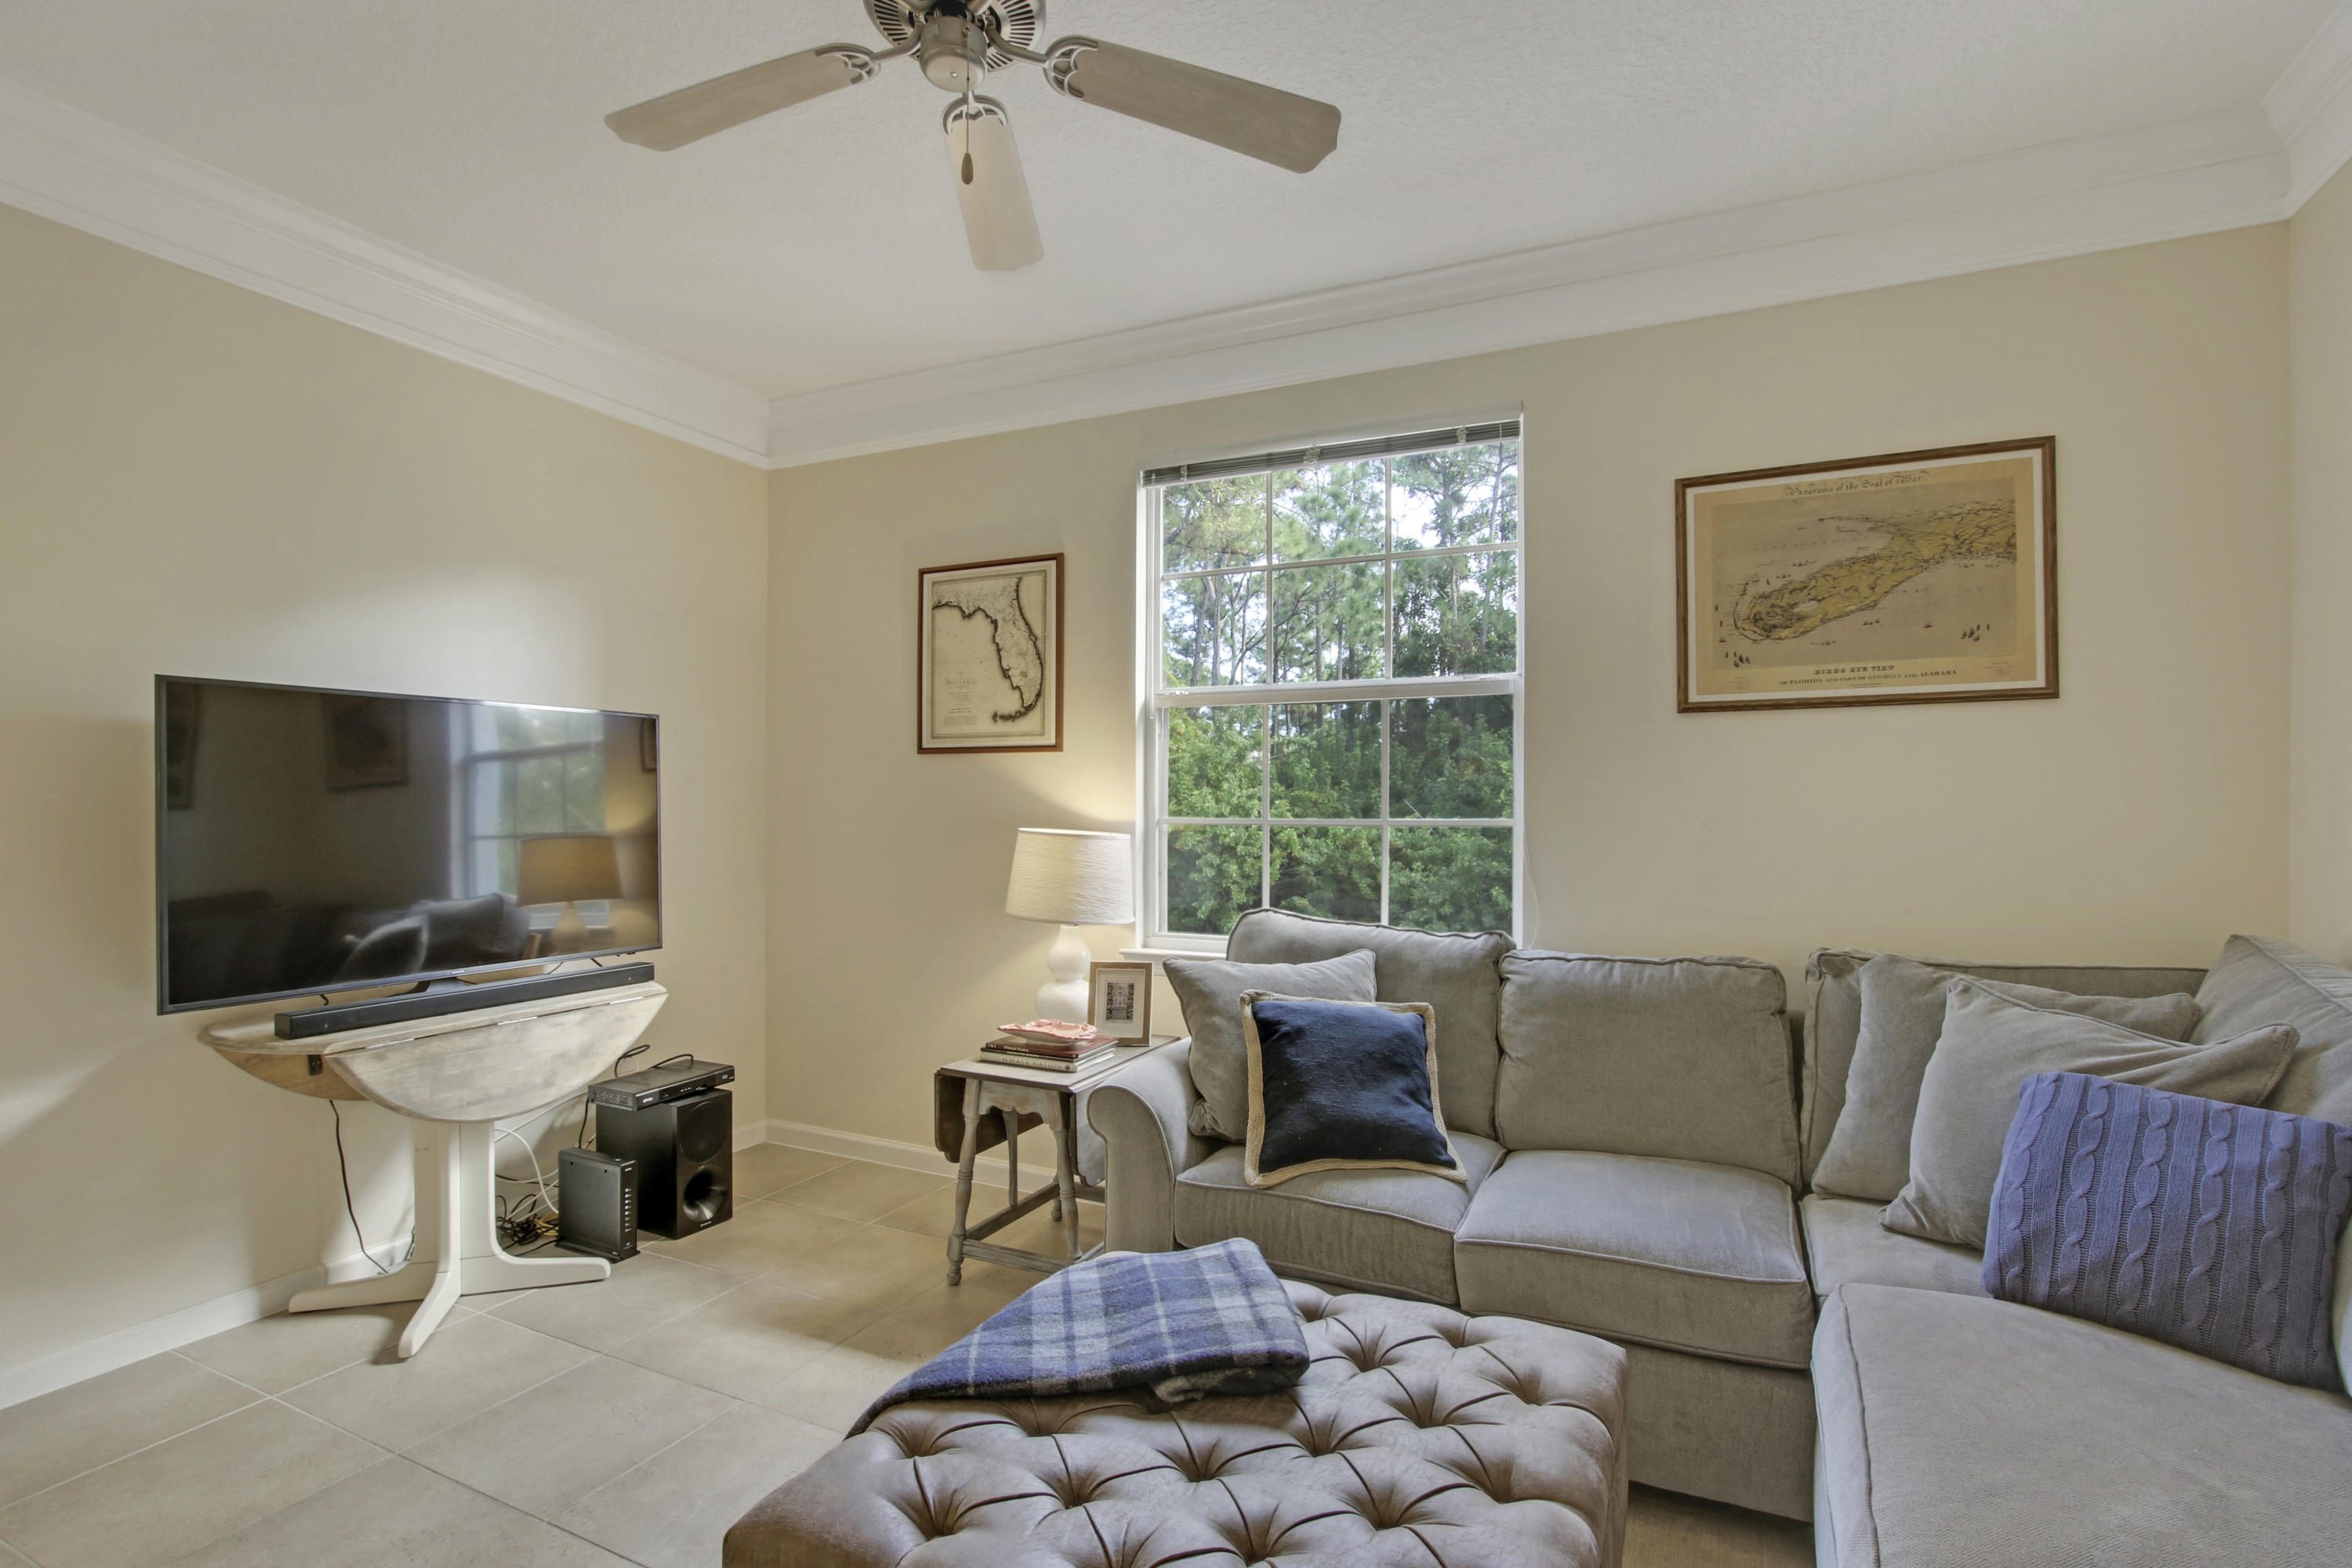 245 Murcia Drive 204  - Abacoa Homes - photo 2